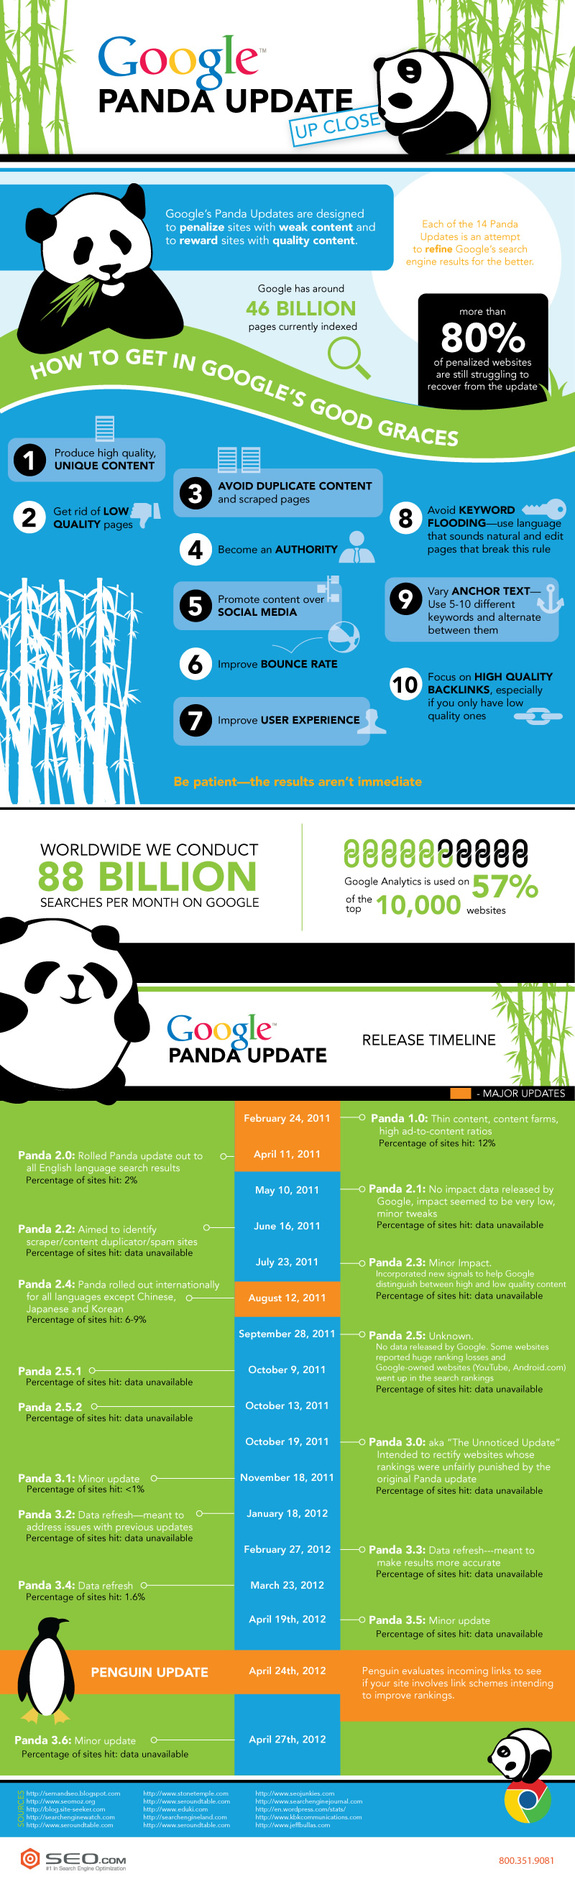 Google Panda Update infographic